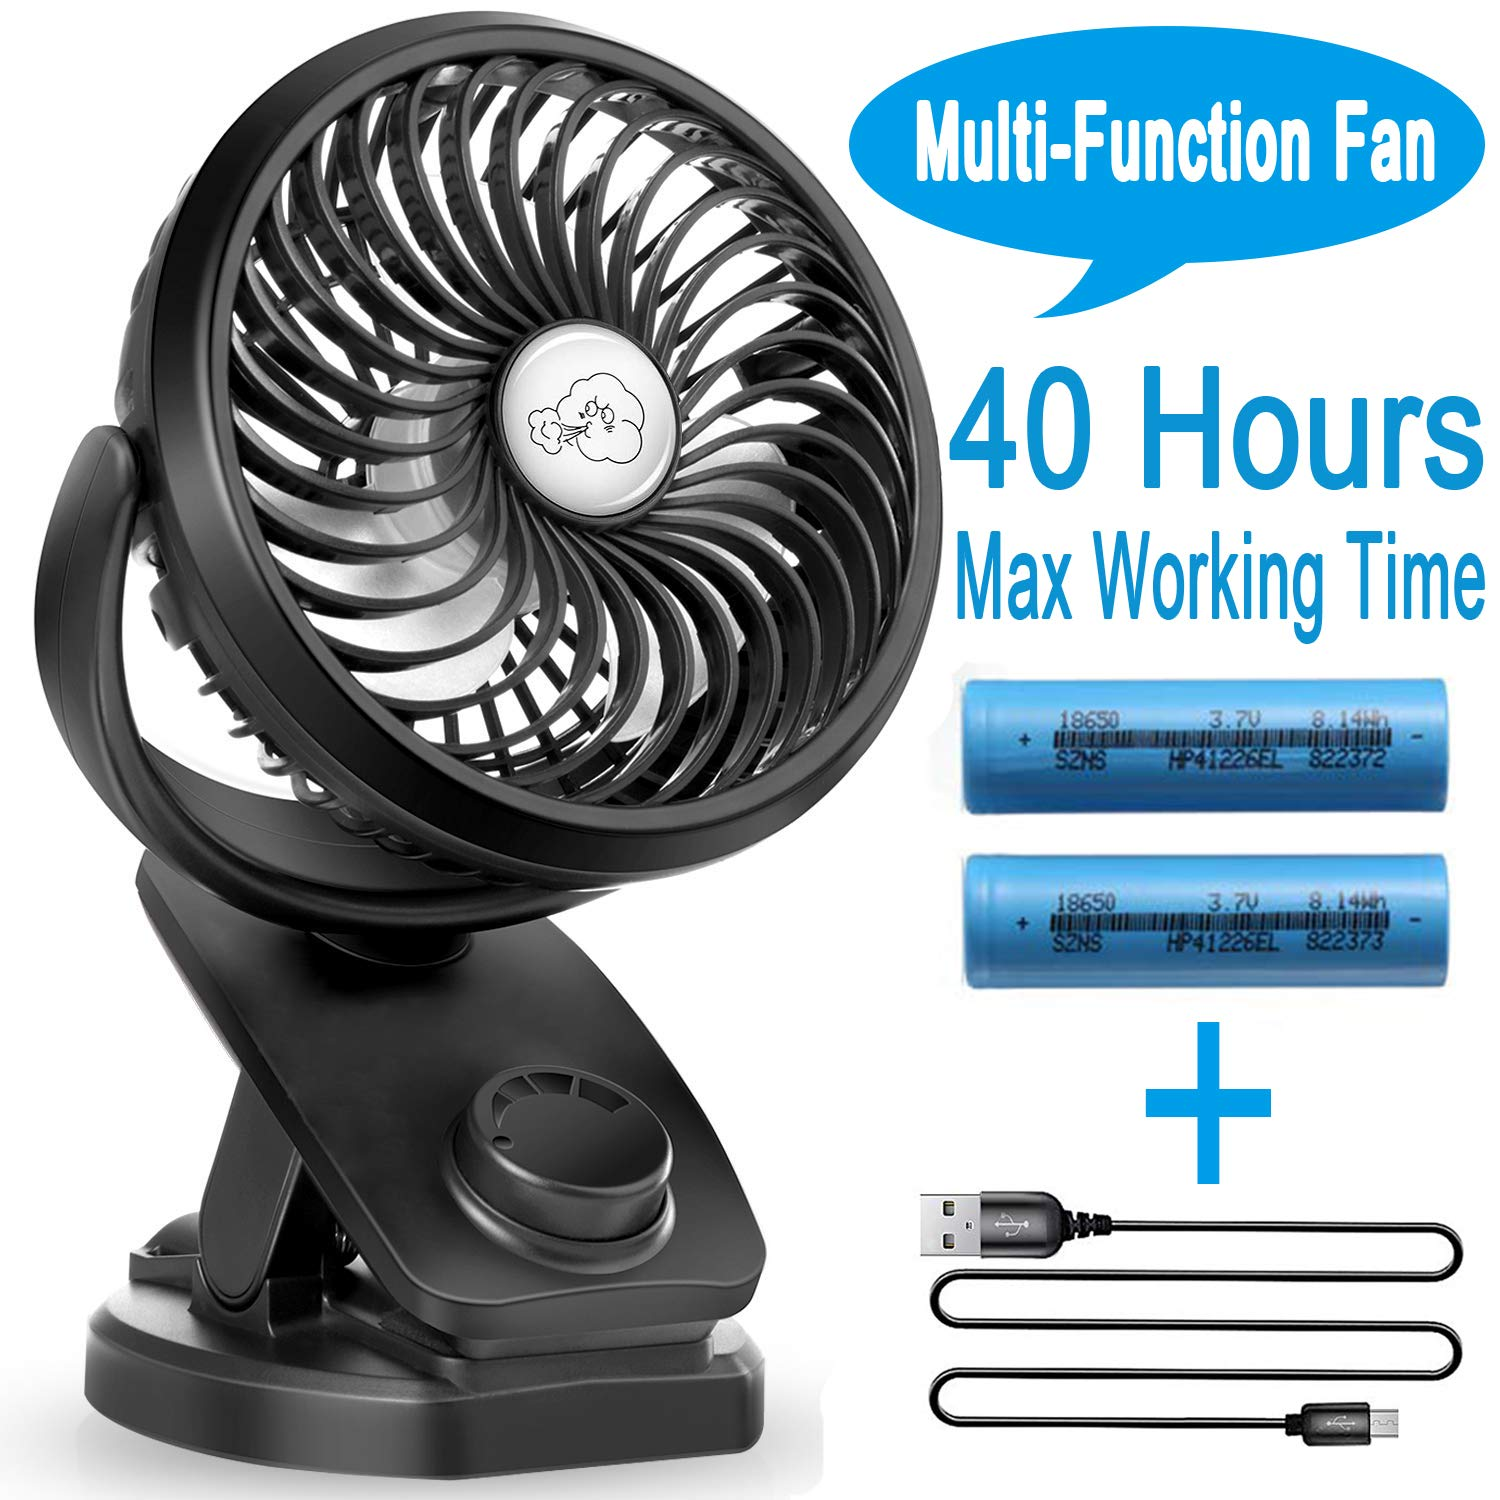 Portable Fan Clip On Stroller Fan – 40 Hours Battery Operated Mini Desk Fan with Rechargeable 4400 mAh Battery, Stepless Speeds Control, Aroma Diffuser, Powerbank Function for Outdoor,Travel, Office